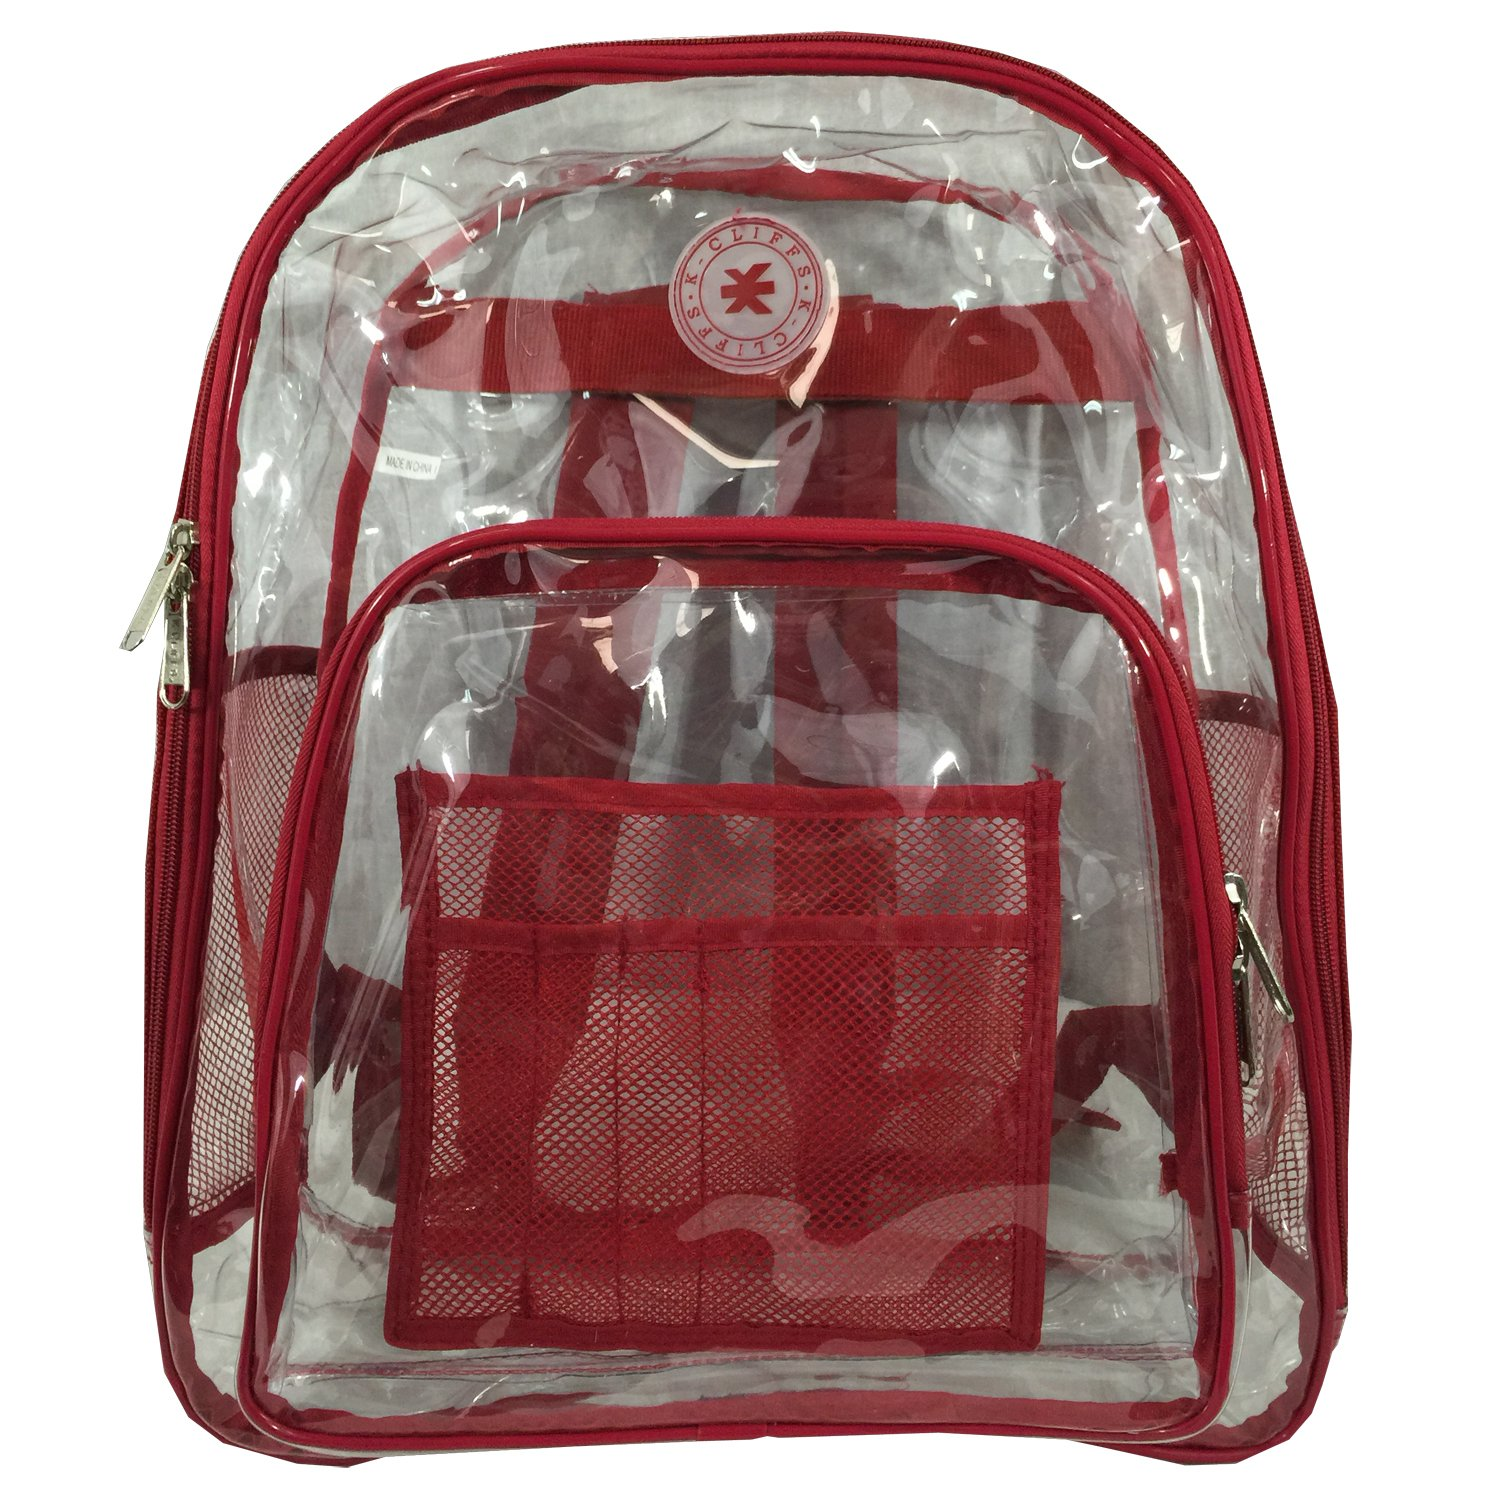 K-Cliffs Heavy Duty Clear Backpack See Through Daypack Student Transparent Bookbag Red By Praise Start LM213